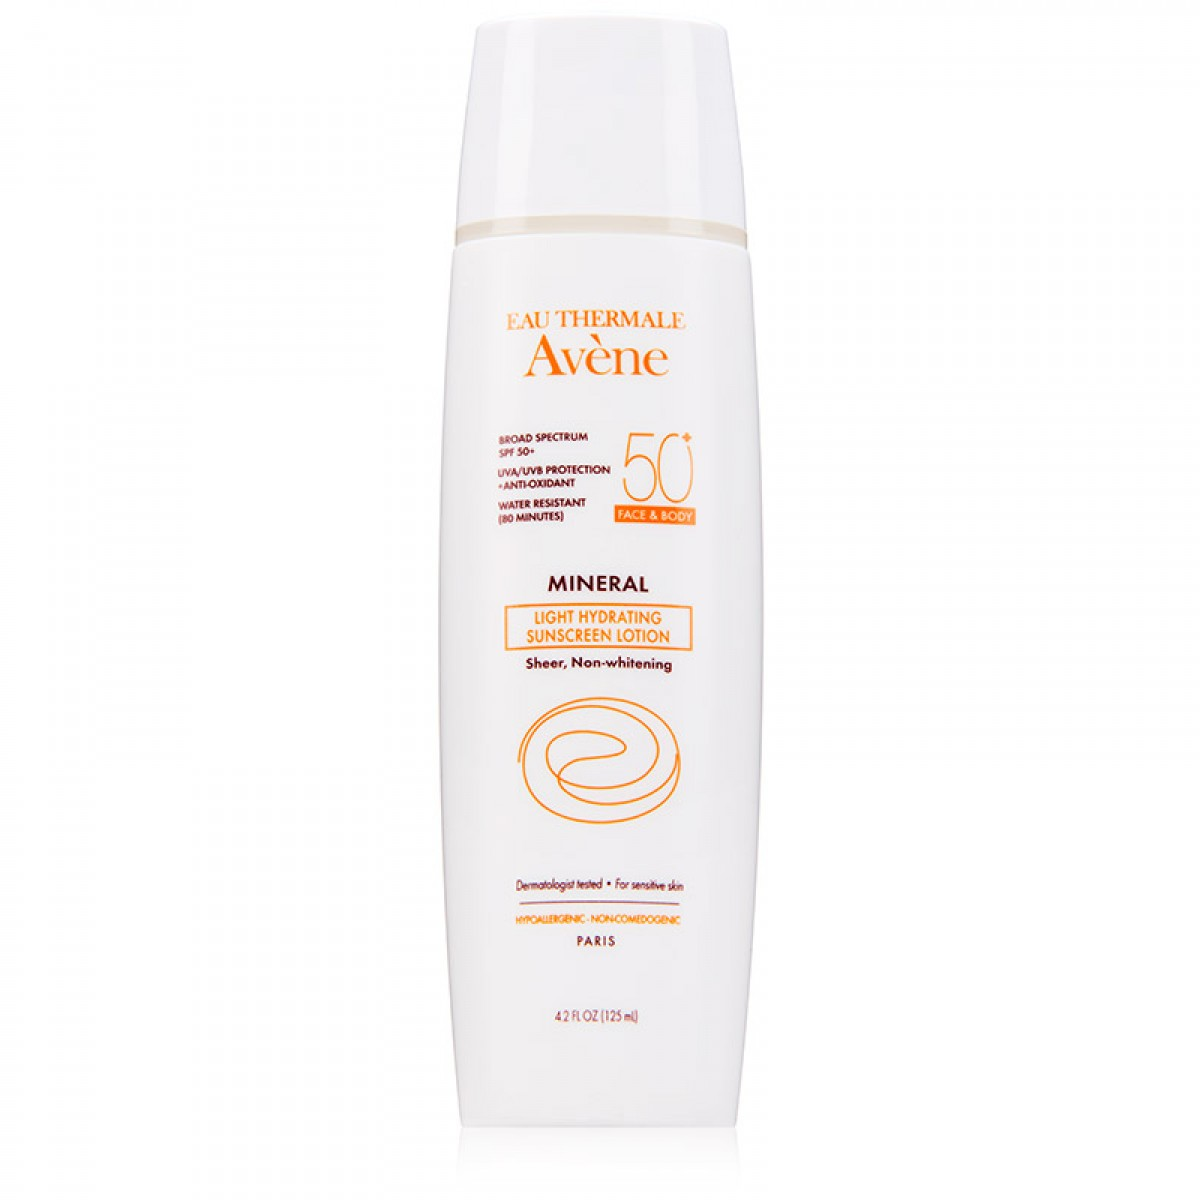 avene-spf-50-mineral-light-hydrating-sunscreen-lotion